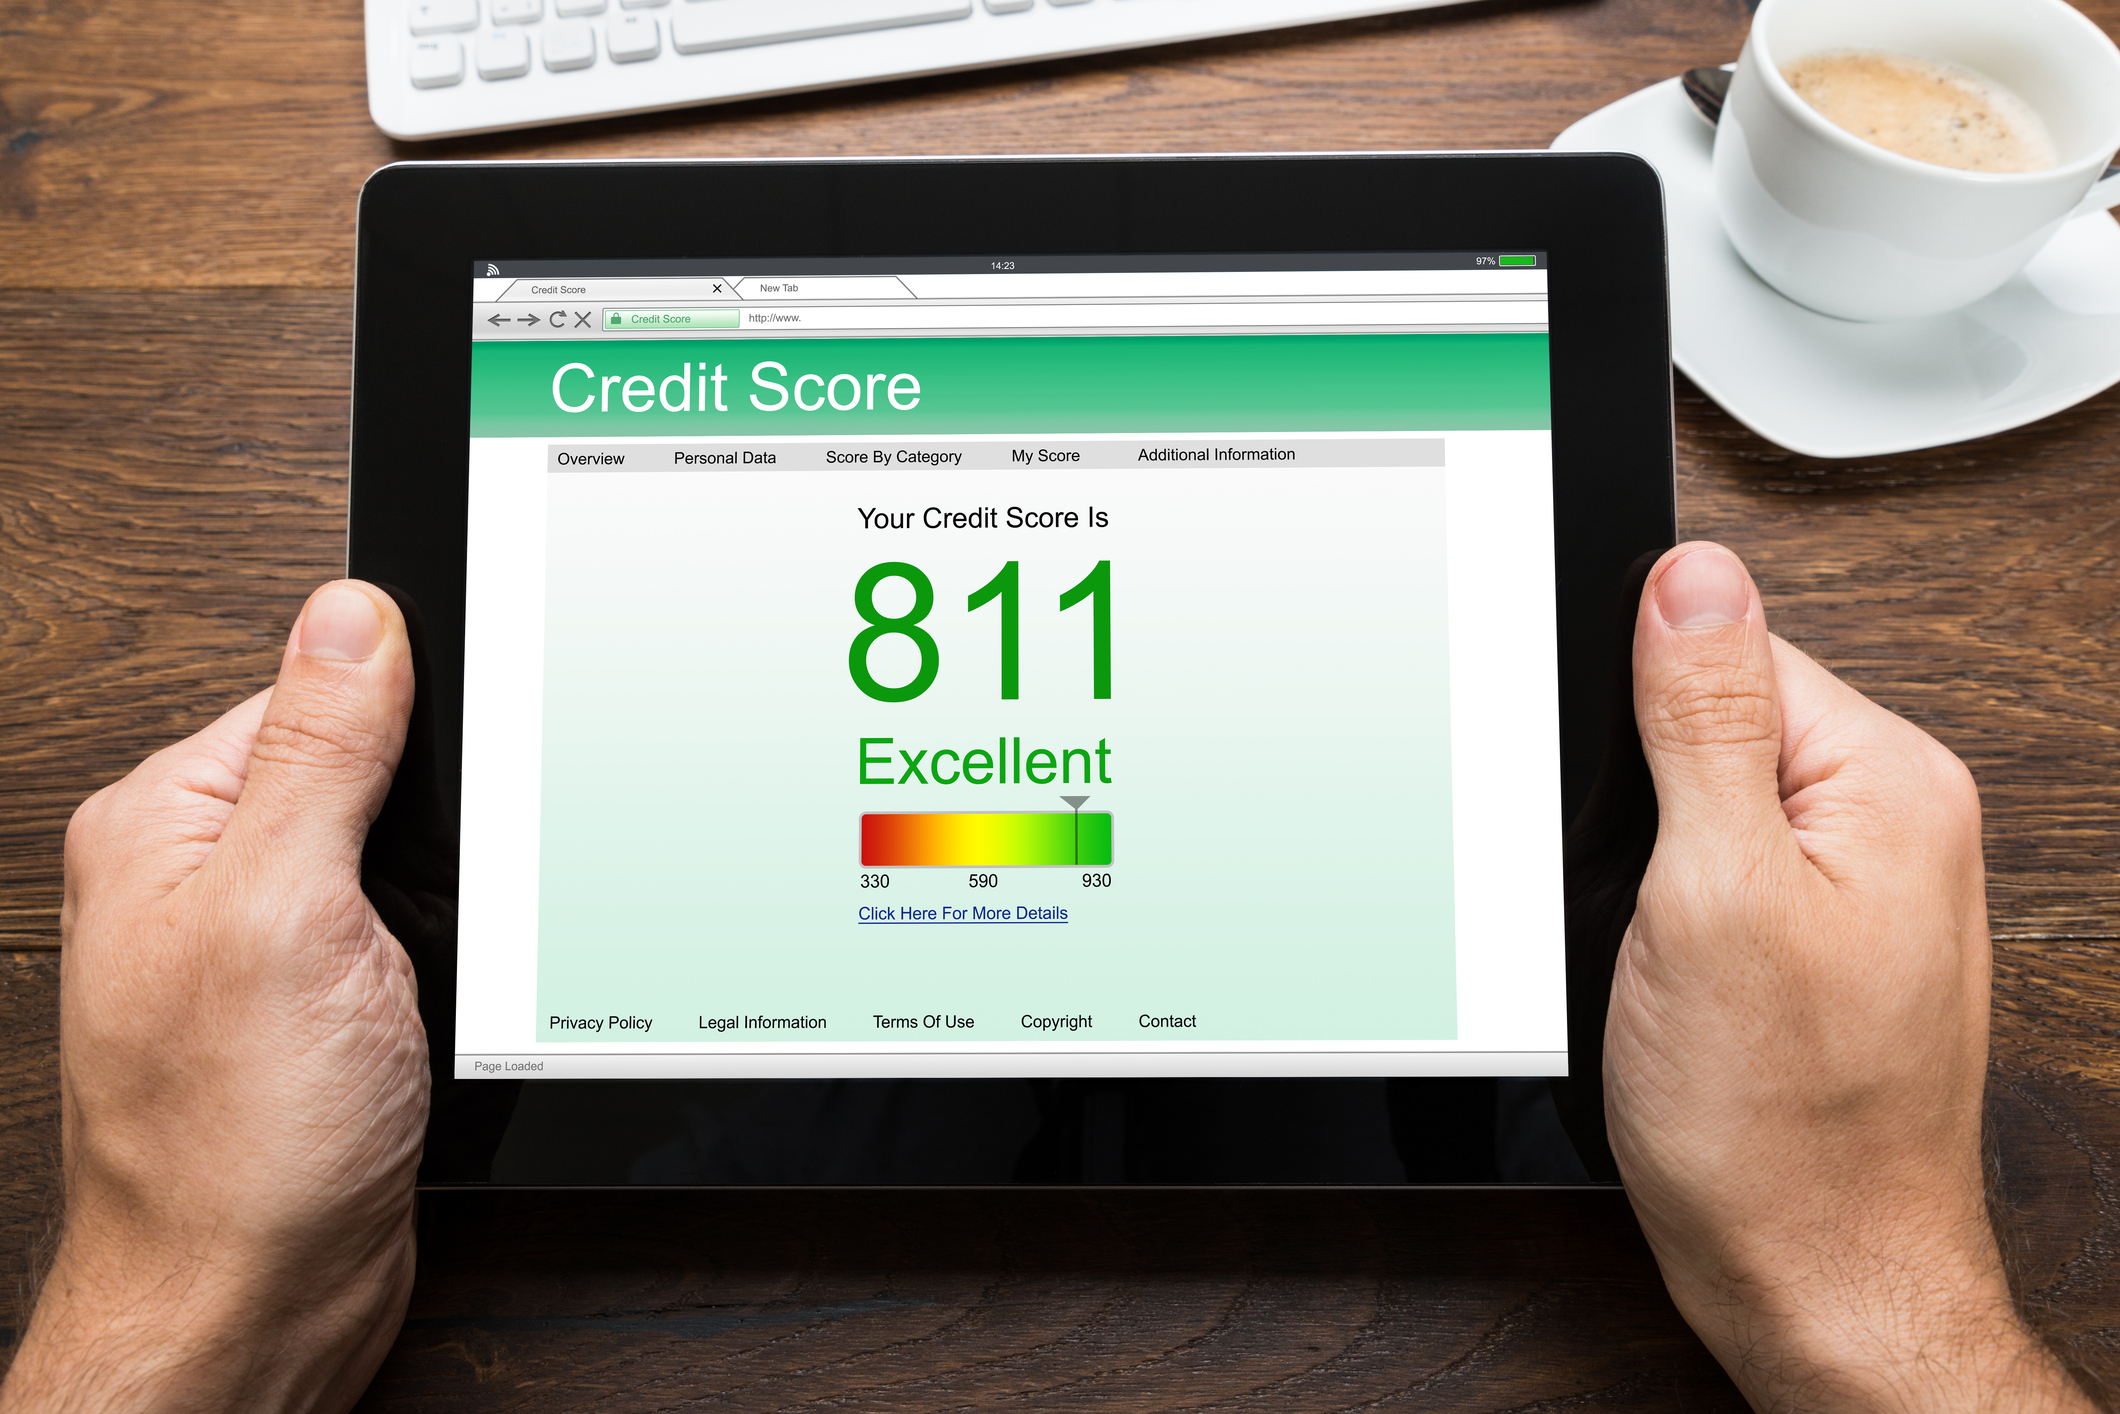 Hands holding a tablet displaying a credit score of 811